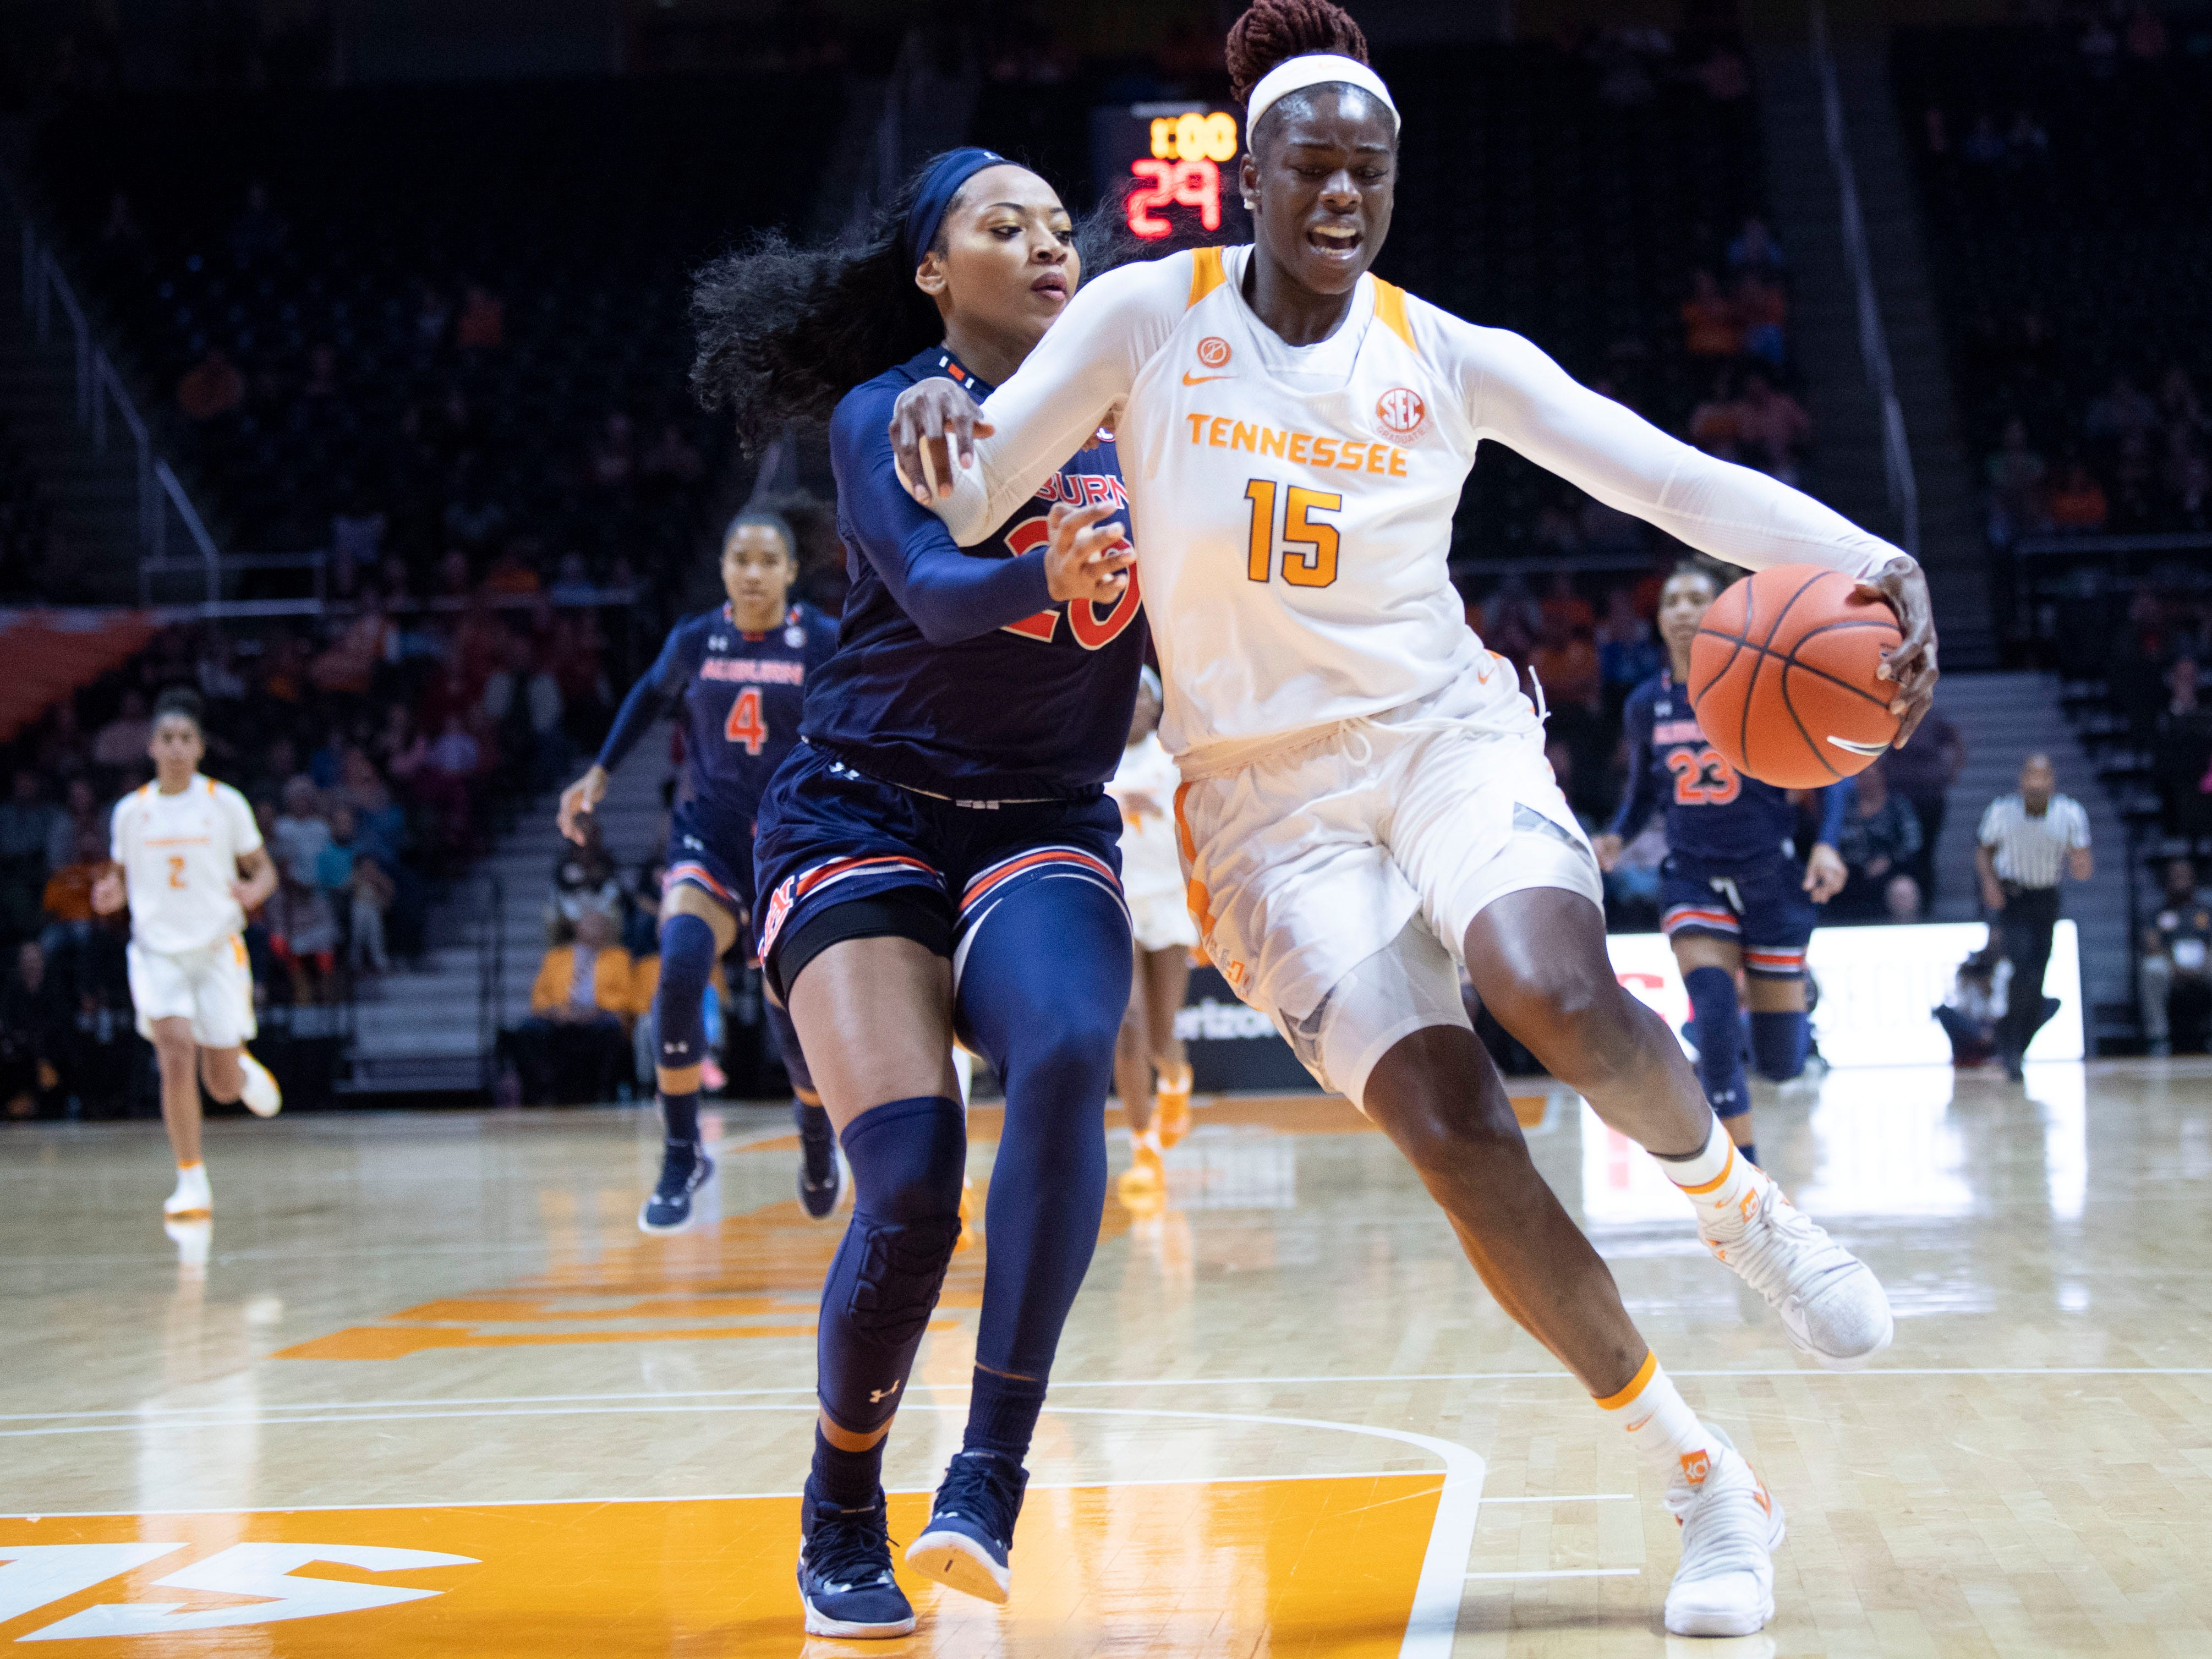 Tennessee's Cheridene Green (15) drives towards the basket while guarded by Auburn's Unique Thompson (20) on Thursday, February 14, 2019.